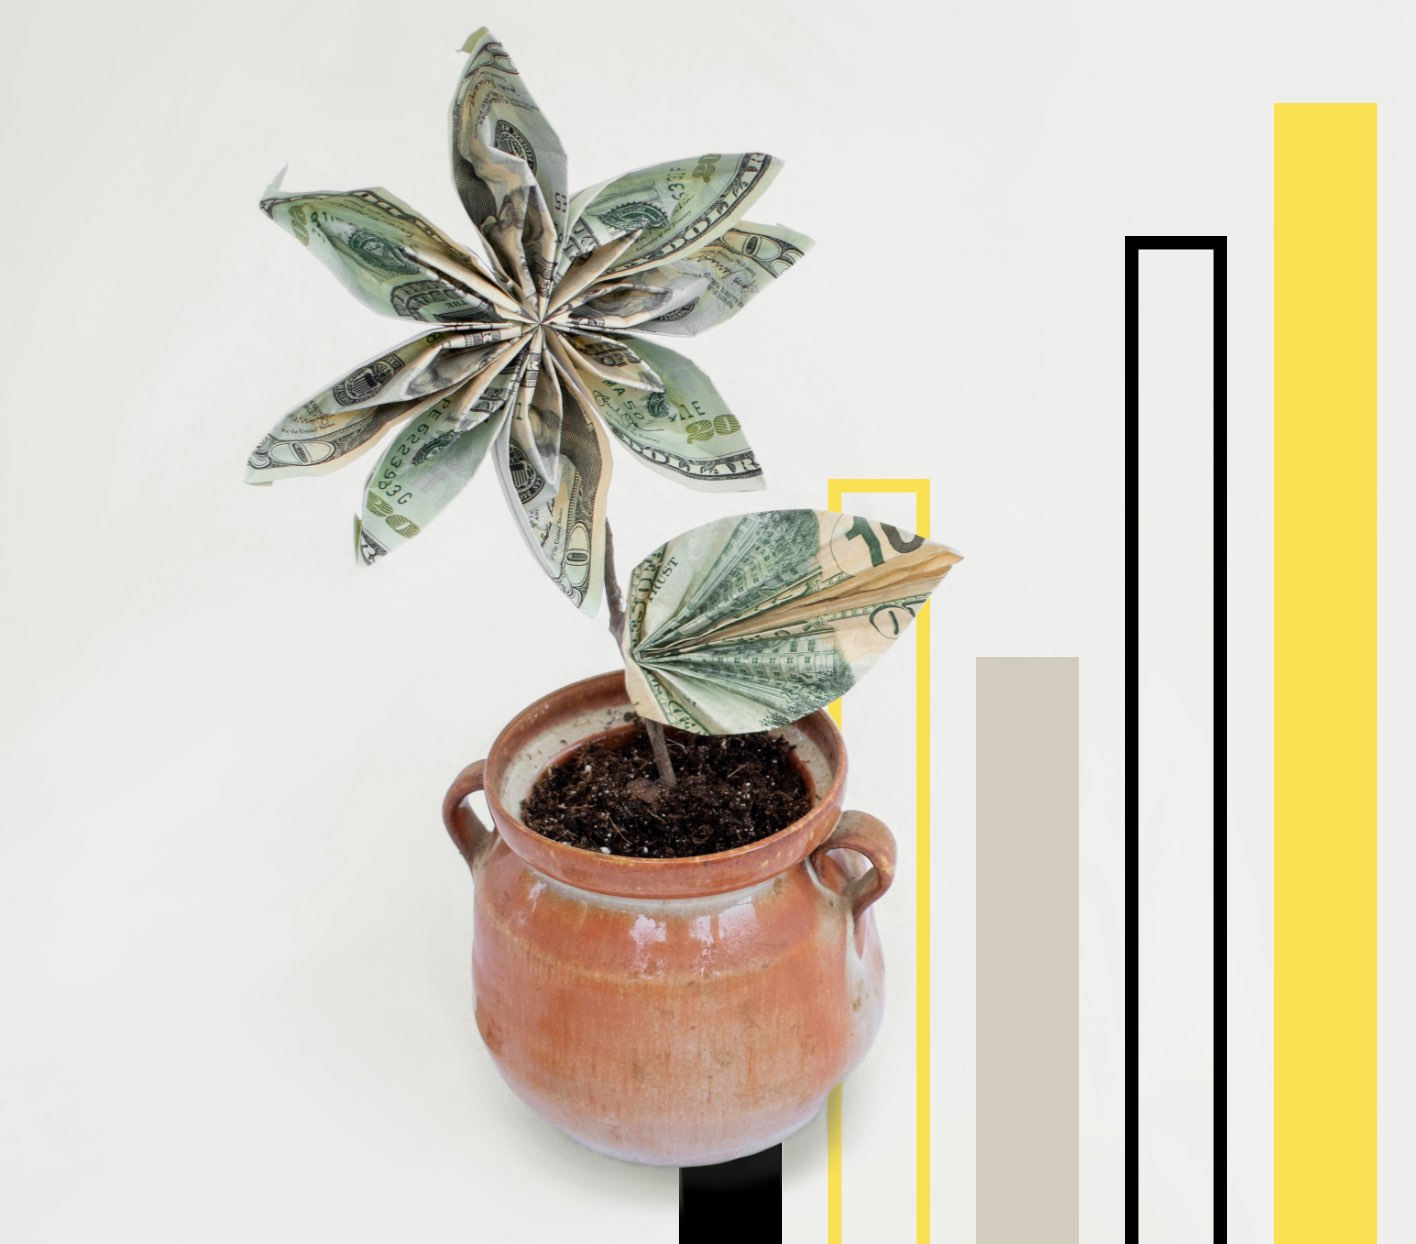 Money flowers growing out of a pot with a chart graphic in the background.